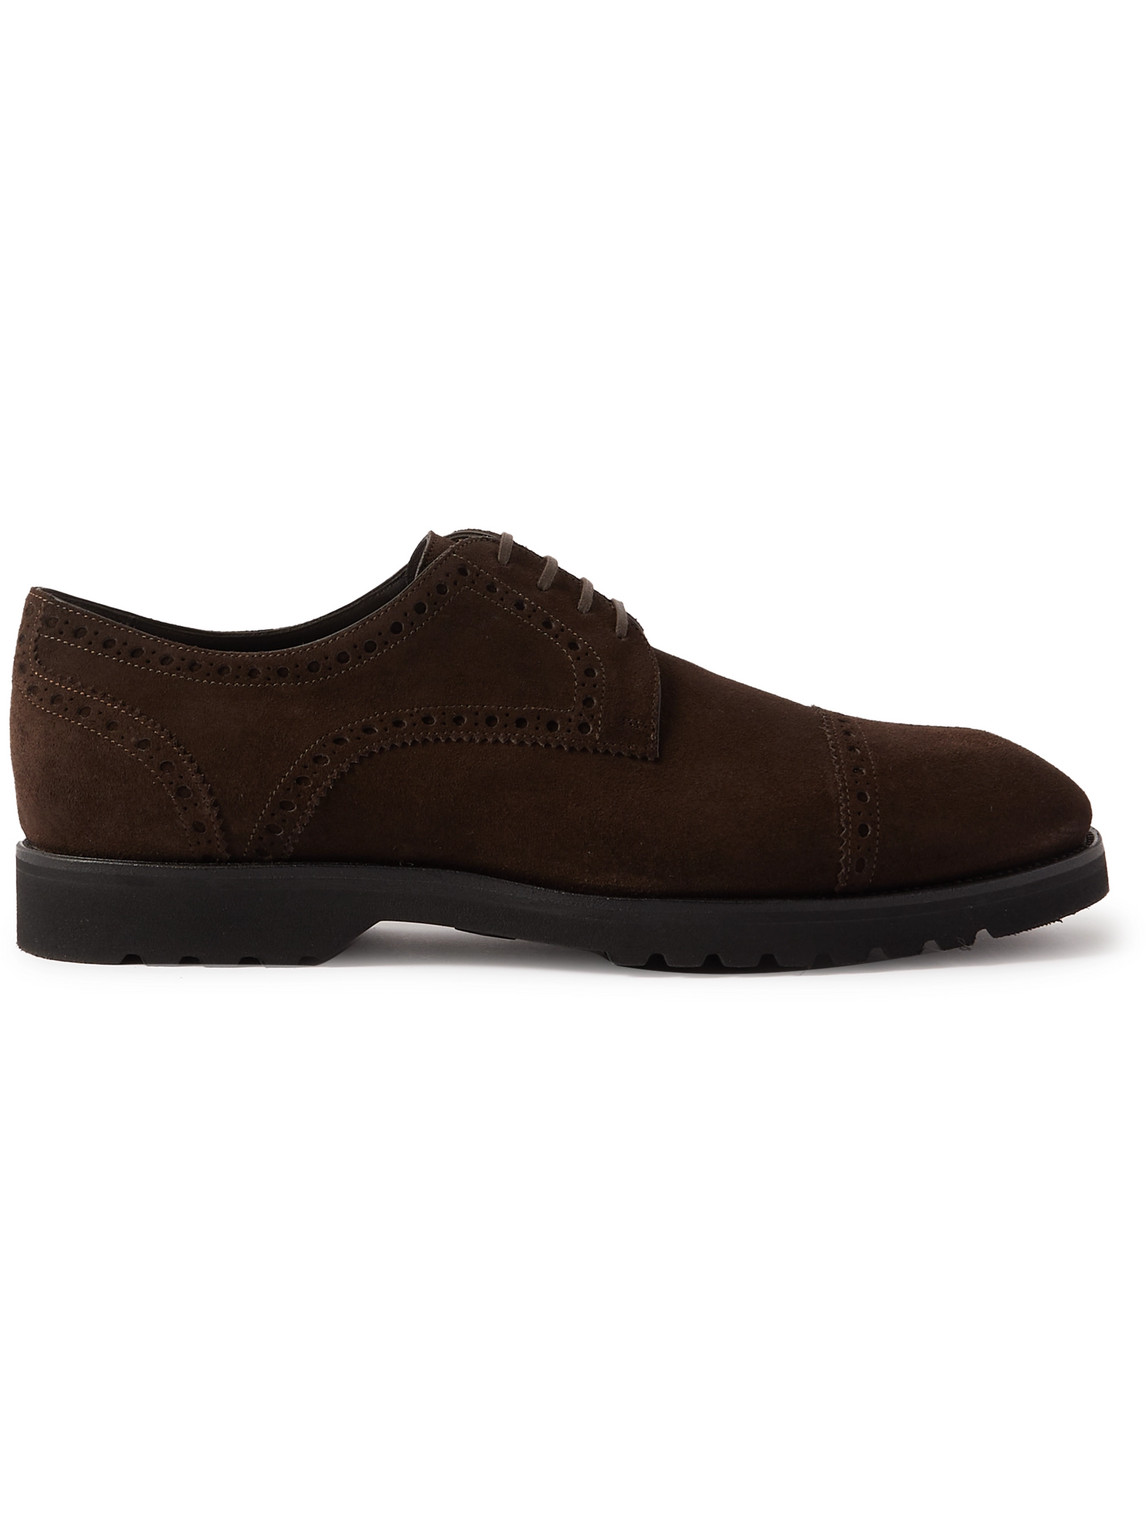 Tom Ford Suede Brogues In Brown